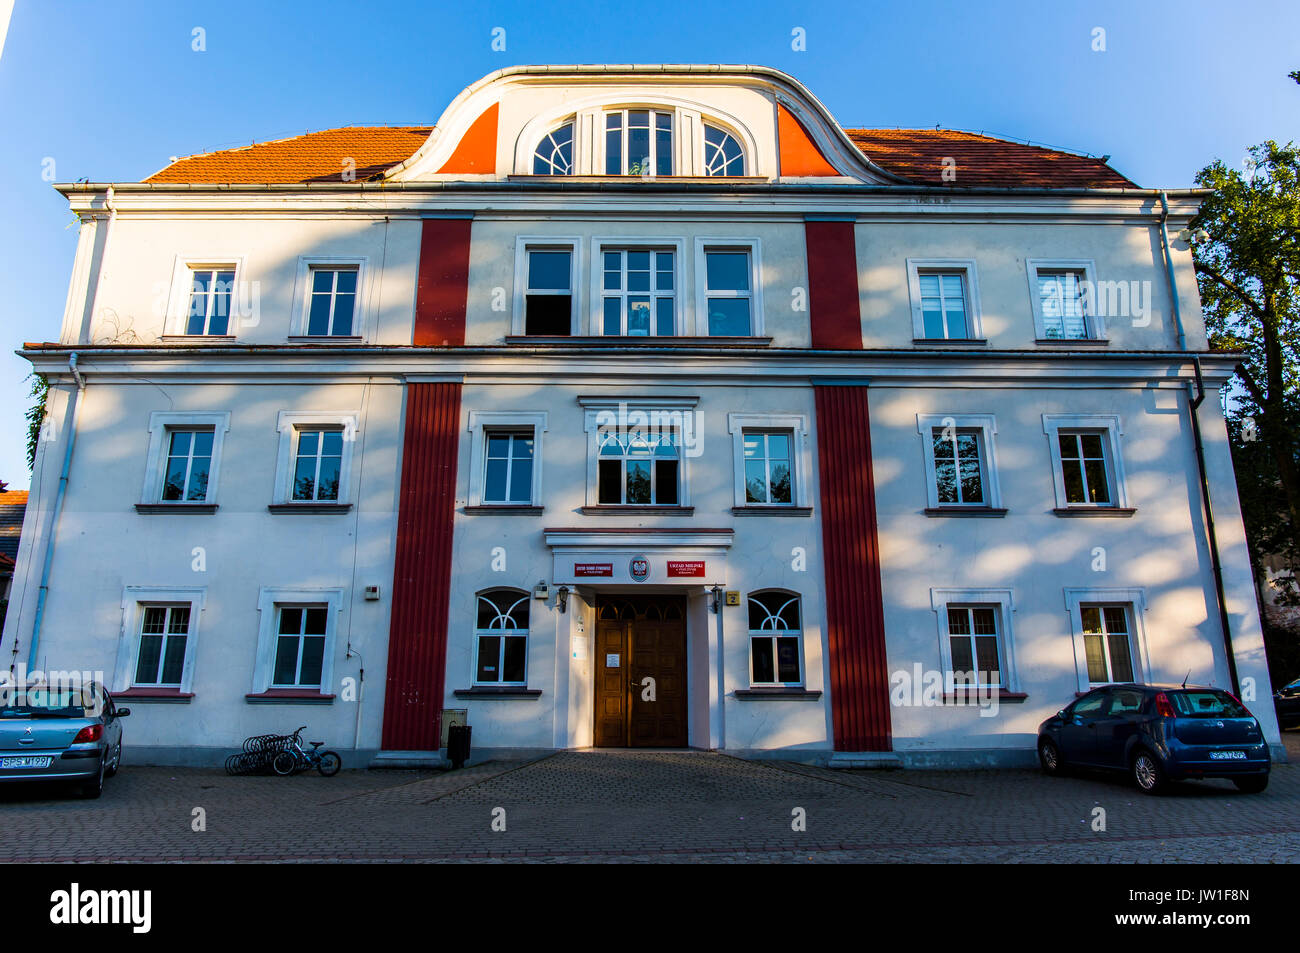 Front view at the town hall in Pszczyna (Pless), Poland. Stock Photo